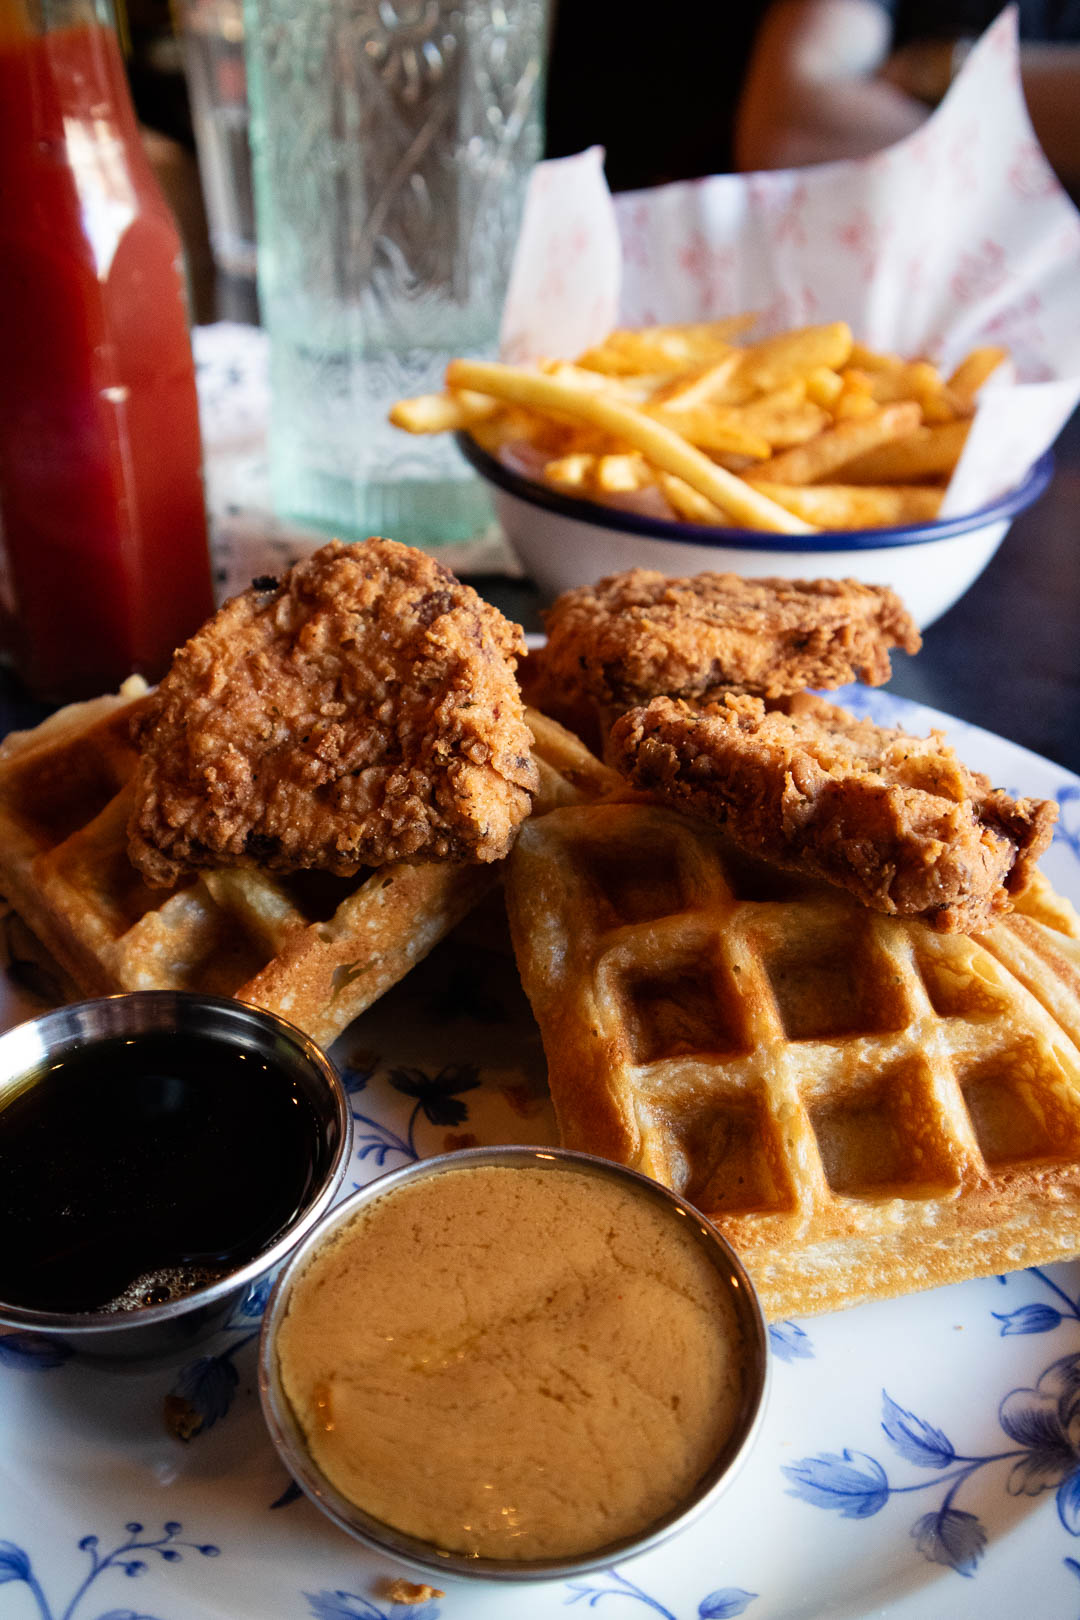 Vegan chicken waffles and burgers at Absurd Bird Glasgow